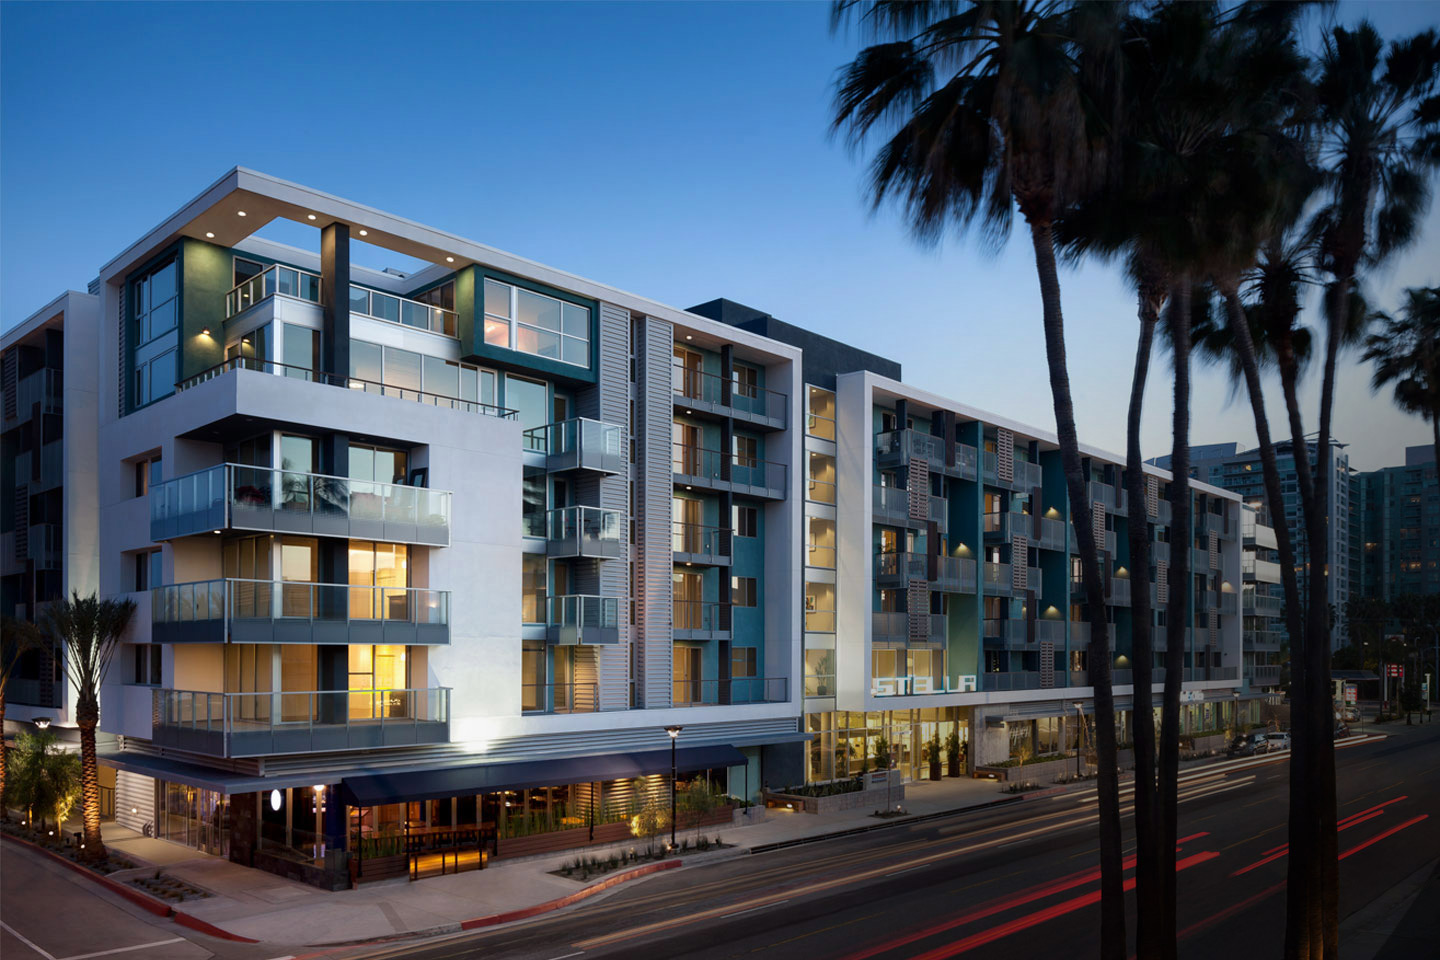 A residential apartment complex managed through easy work order's enterprise saas system